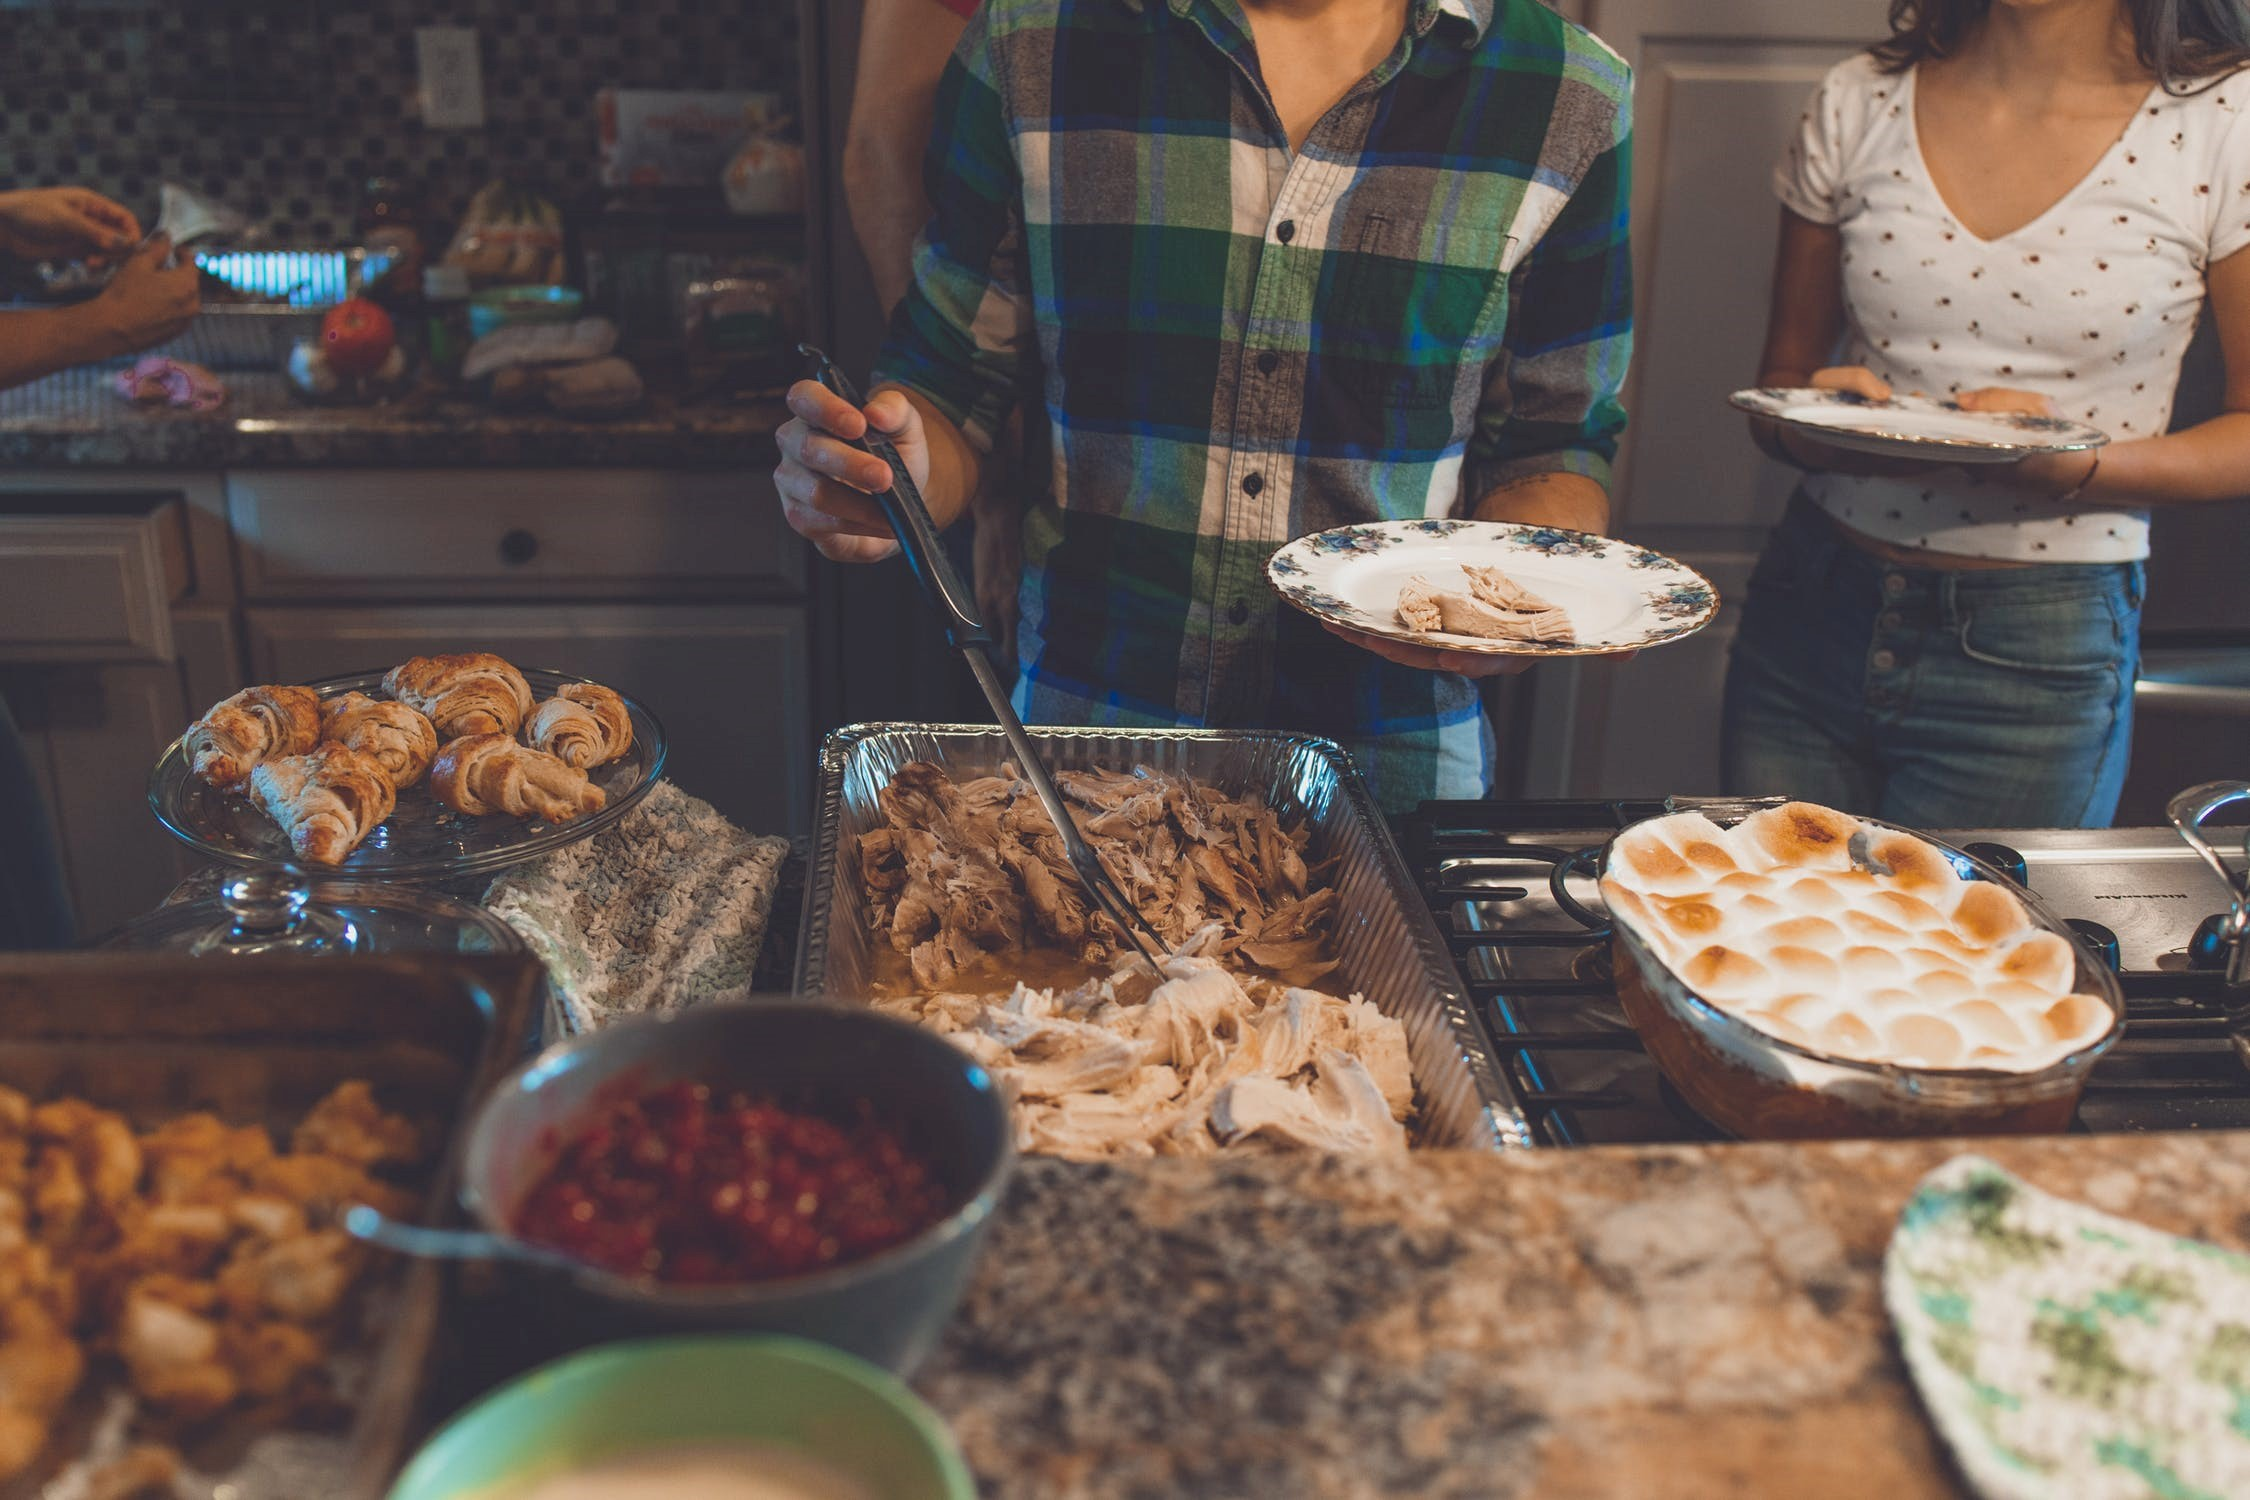 How To Get Your Home Thanksgiving Ready (And Impress Even The Most Critical Family Members)